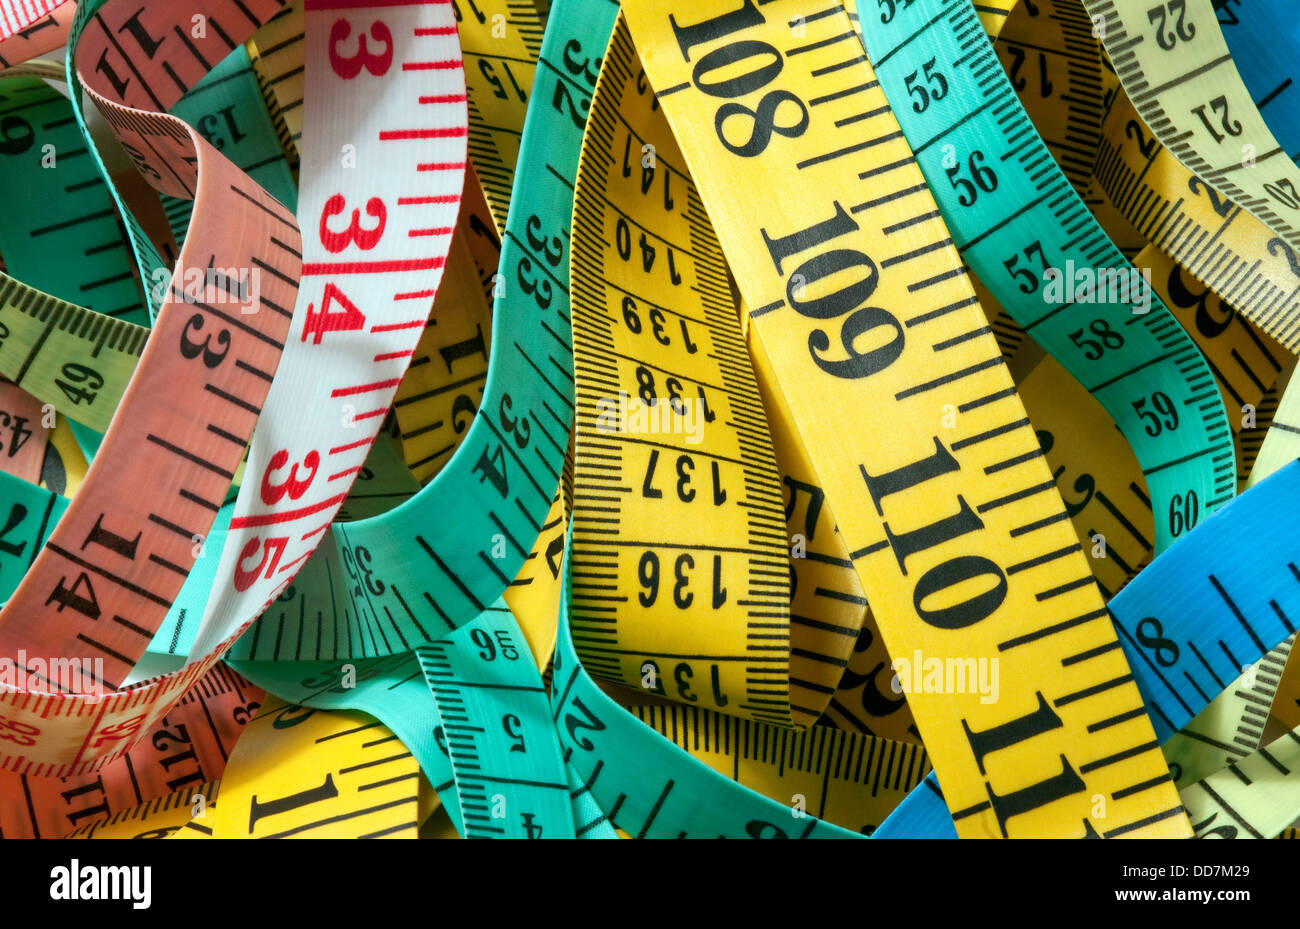 selection of colourful tape measures - Stock Image